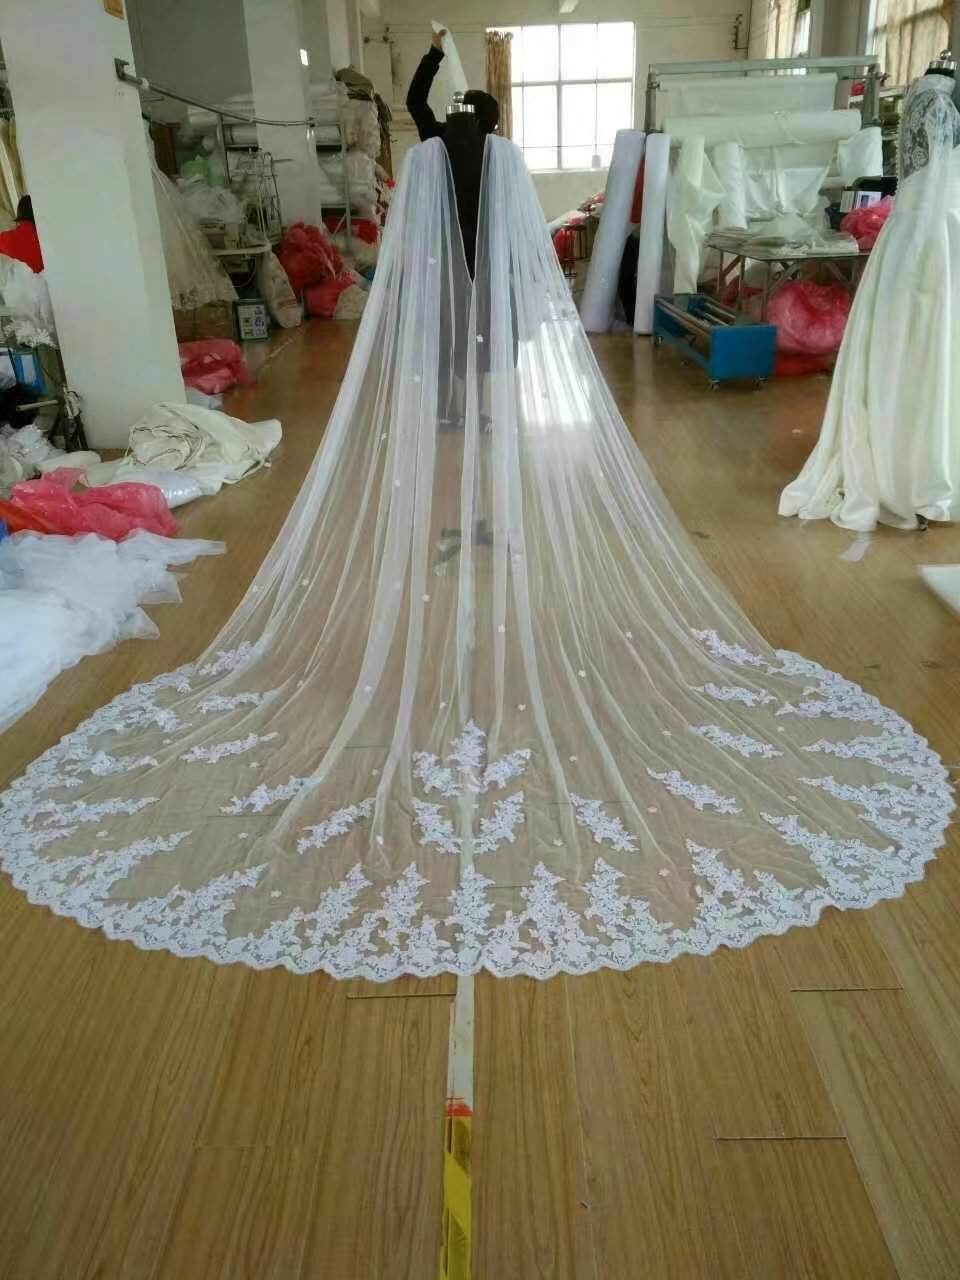 New Cathedral Length Bridal Cape Cloak Lace Long Wedding Dress Accessory in White,Off white,Ivory-in Wedding Jackets / Wrap from Weddings & Events